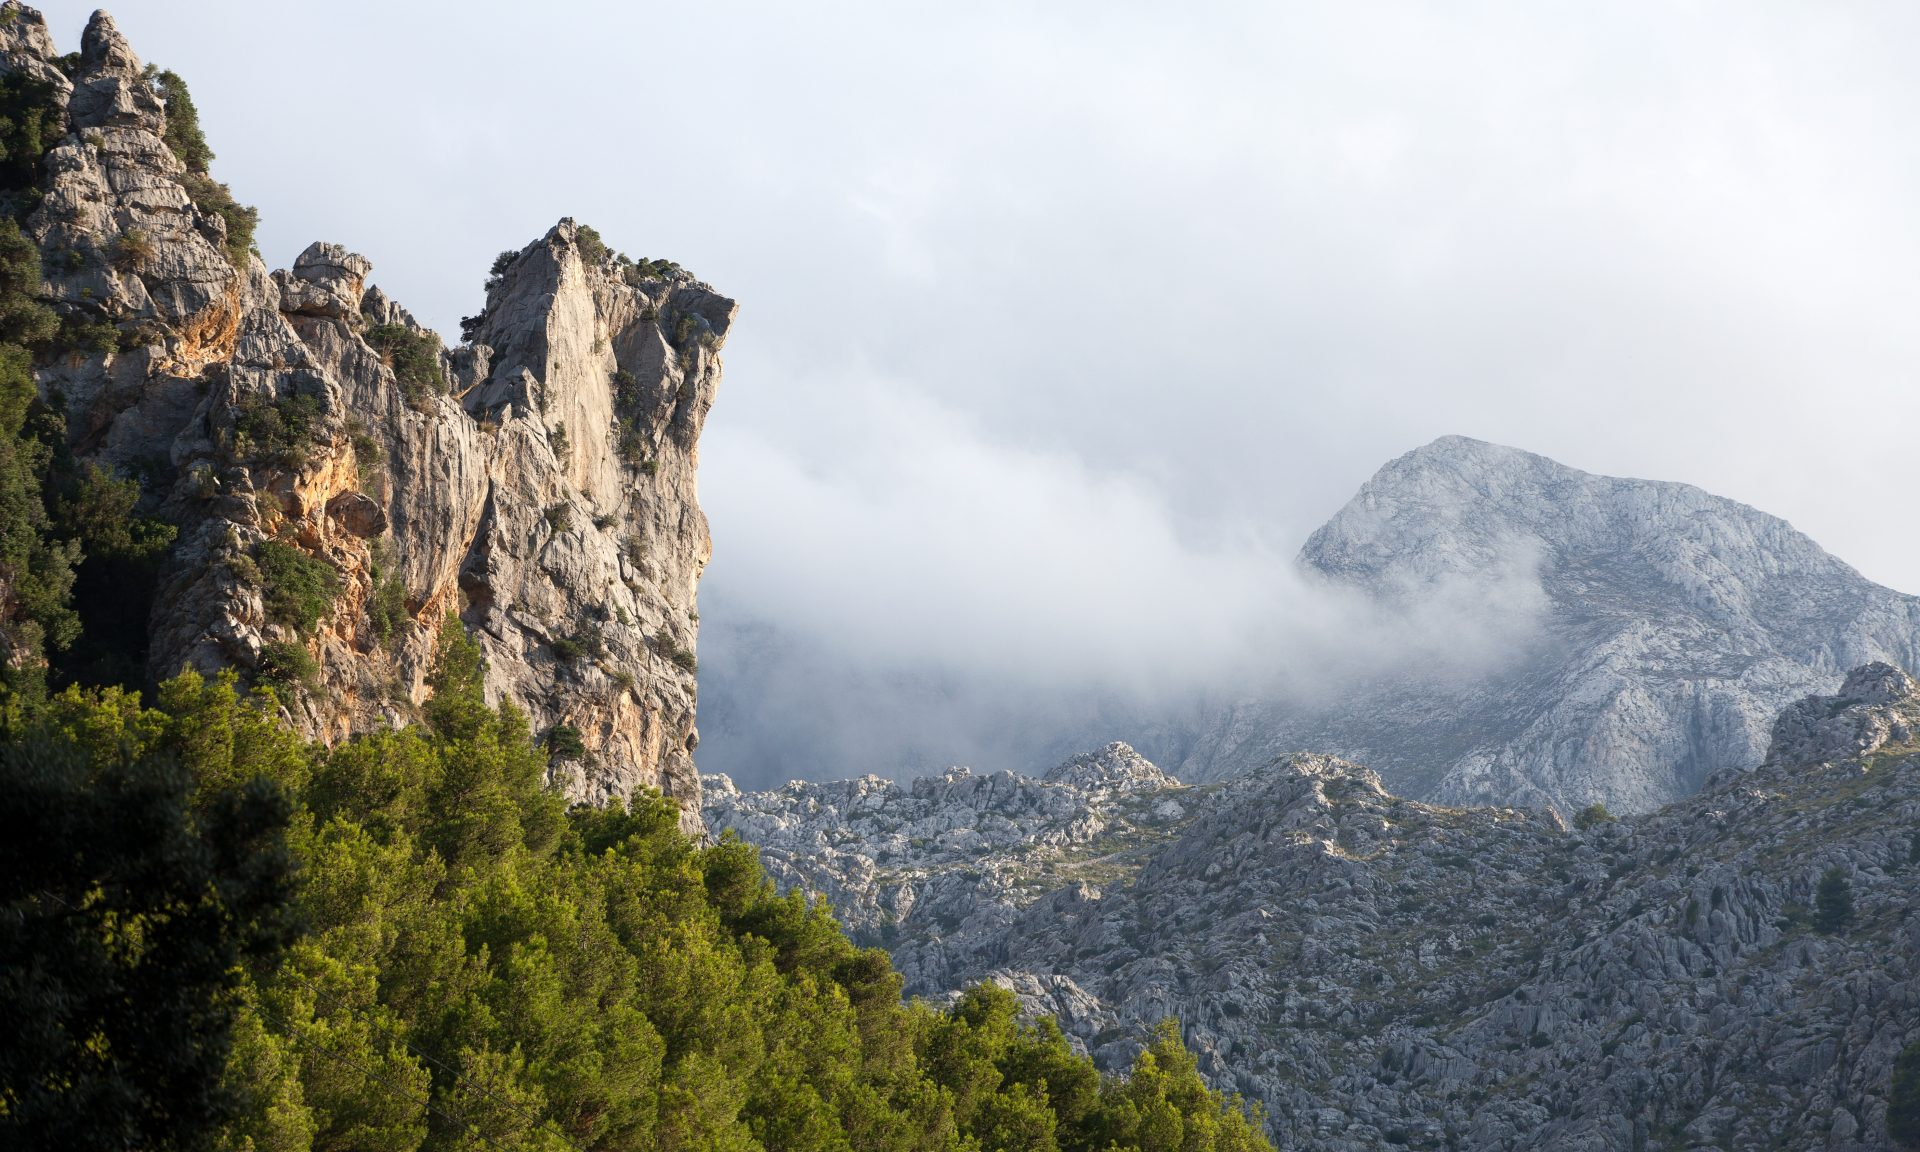 Numerous expats choose to live against the backdrop of the beautiful Tramuntana Mountains in the Balearic Islands.